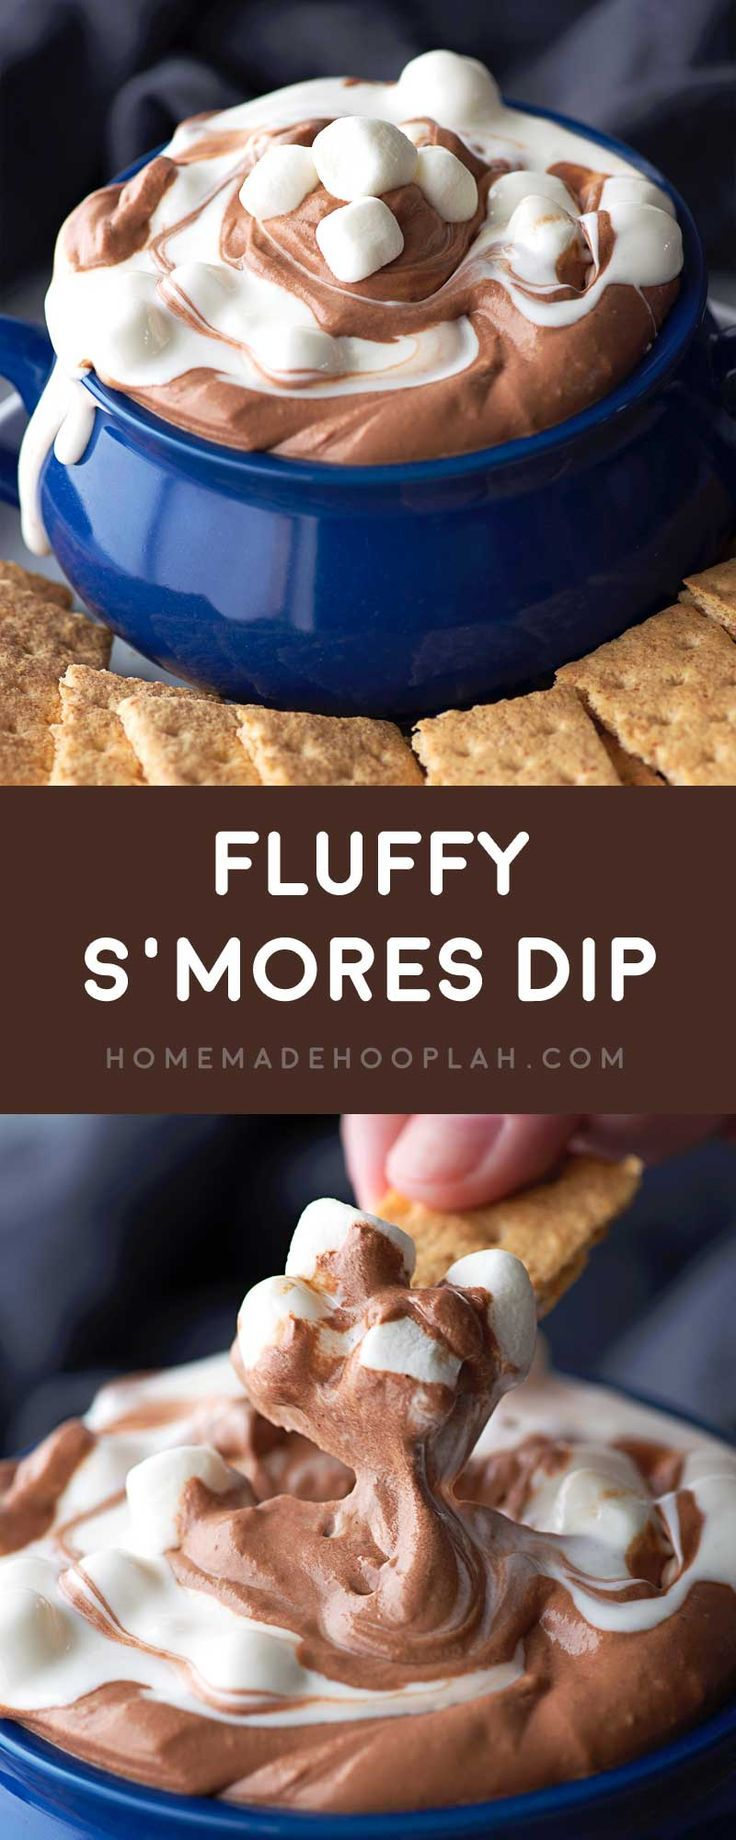 Fluffy S'mores Dip! Fluffy marshmallow and chocolate dips are swirled together…